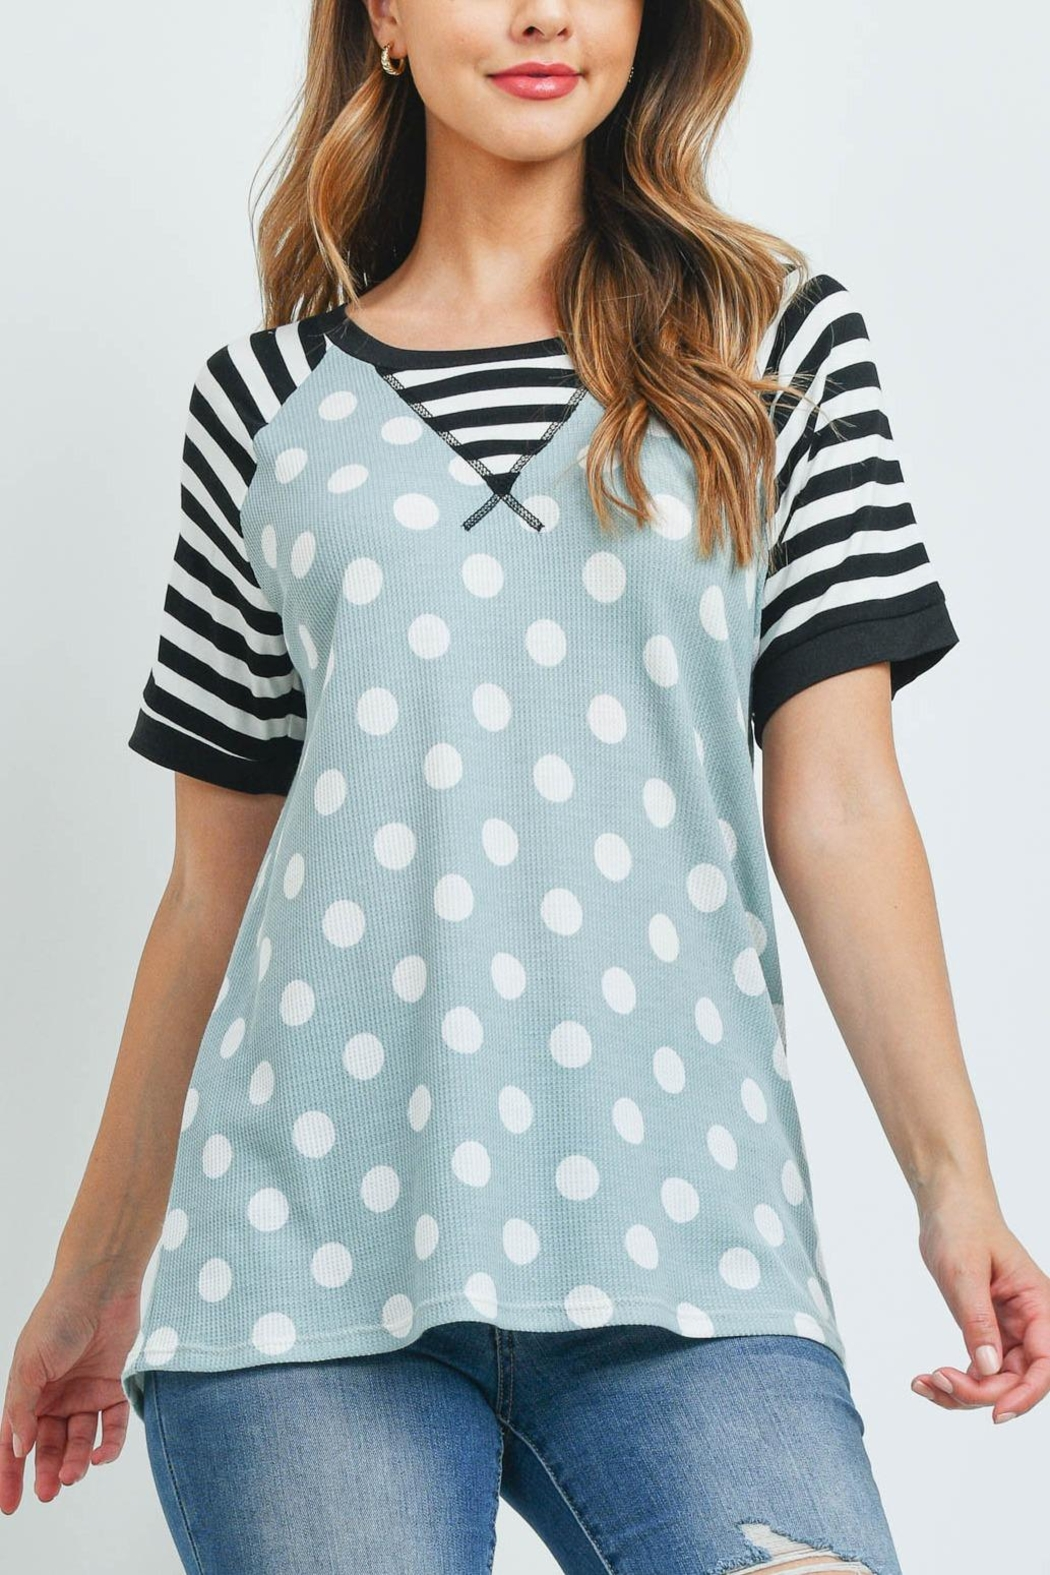 Riah Fashion Hermal-Polka-Dot-Stripes-Neck-And-Sleeve-Top - Front Cropped Image